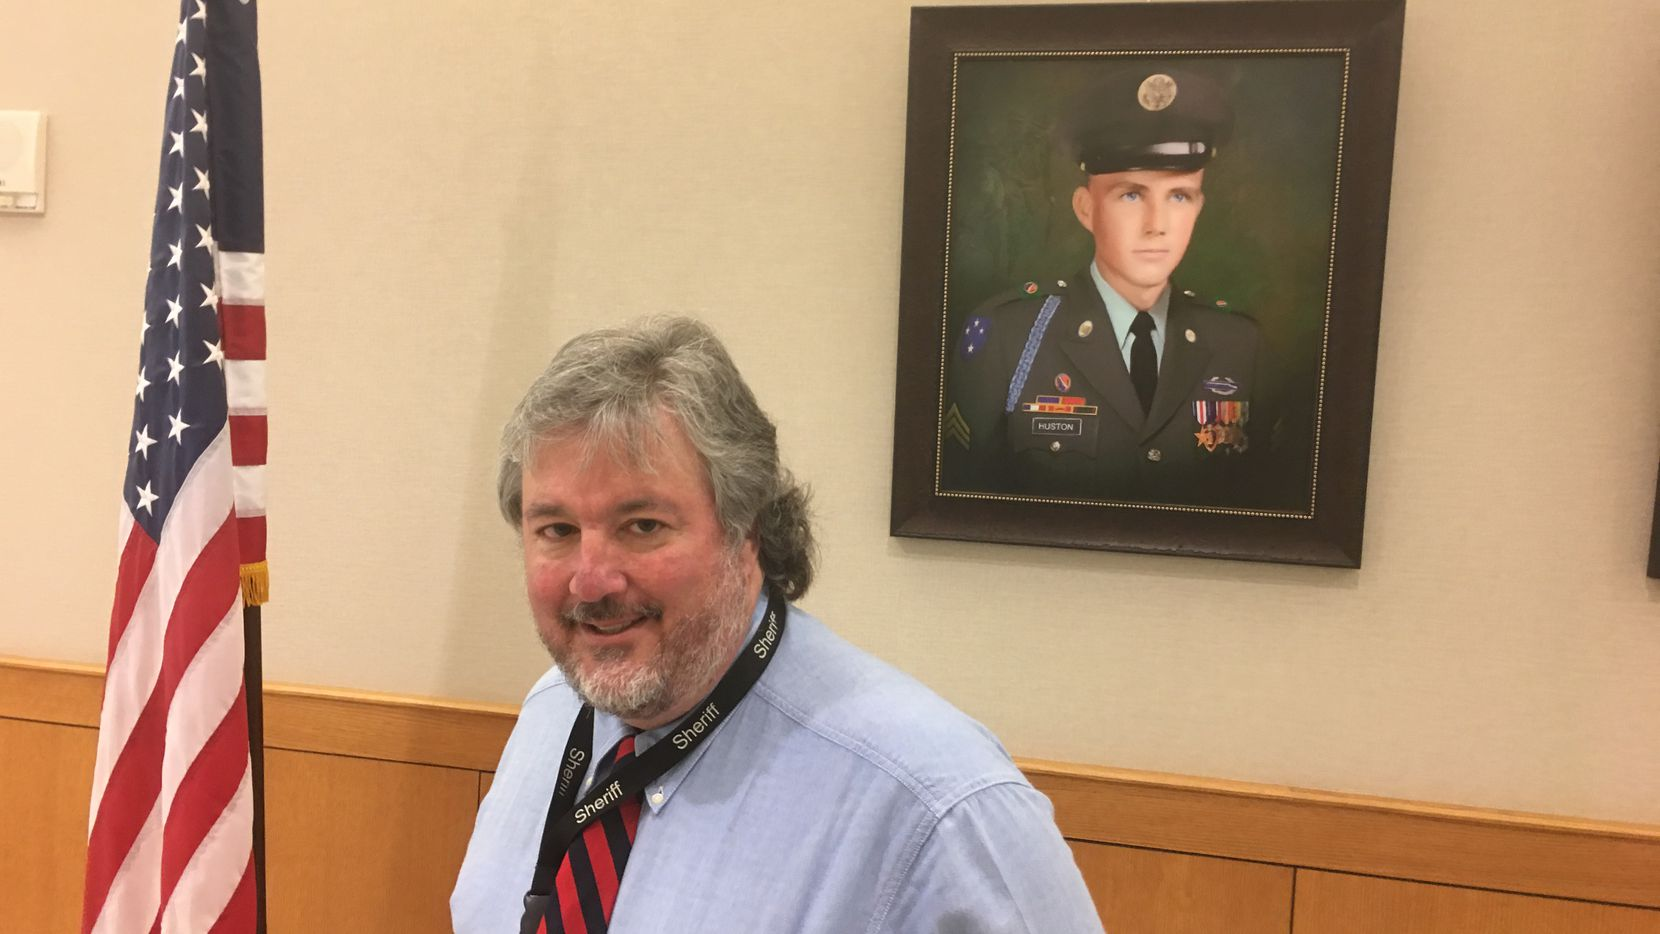 Artist Colin Kimball stands before a portrait he painted of Joe Huston, 20, killed in action in Vietnam in 1969. Huston was from Plano. He was posthumously awarded a Silver Star.